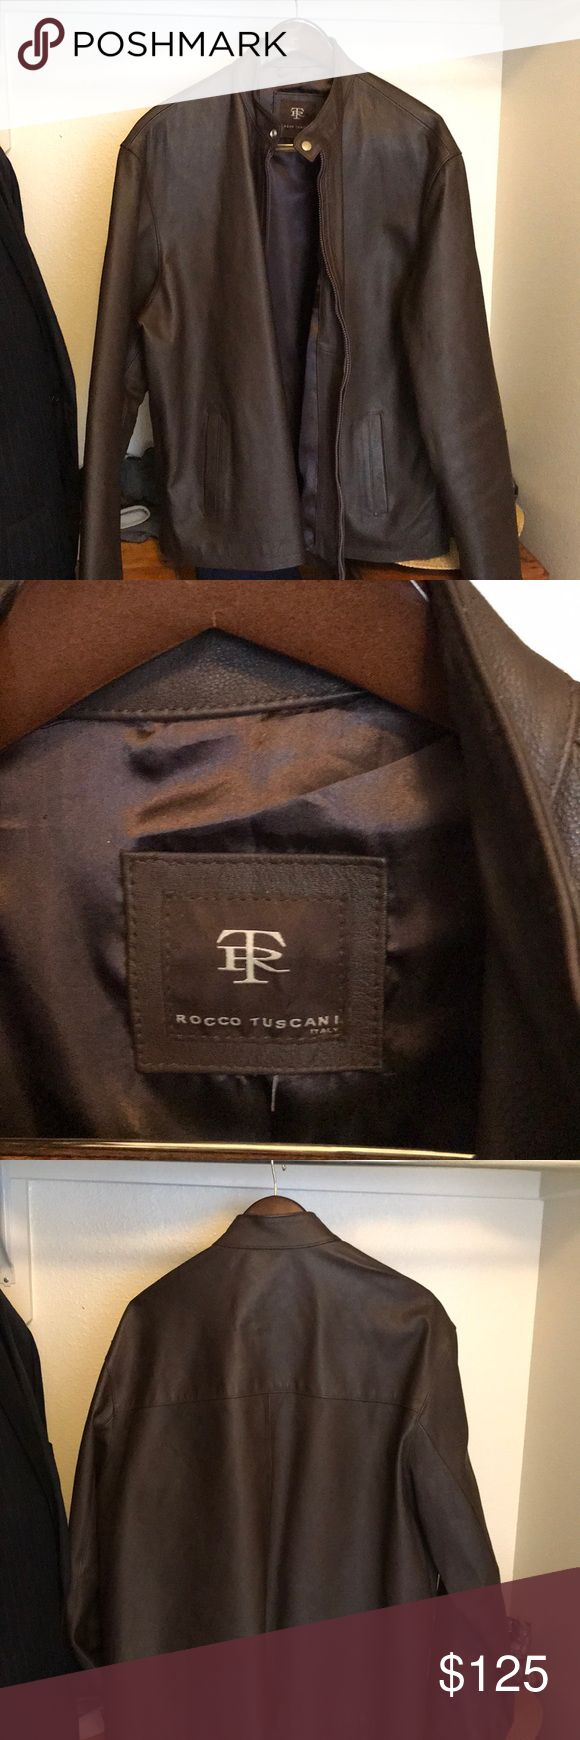 Rocco Tuscani 100% Italian leather jacket 100% Tuscan leather Italian jacket. Worn only twice in excellent condition. rocco tuscani Jackets & Coats